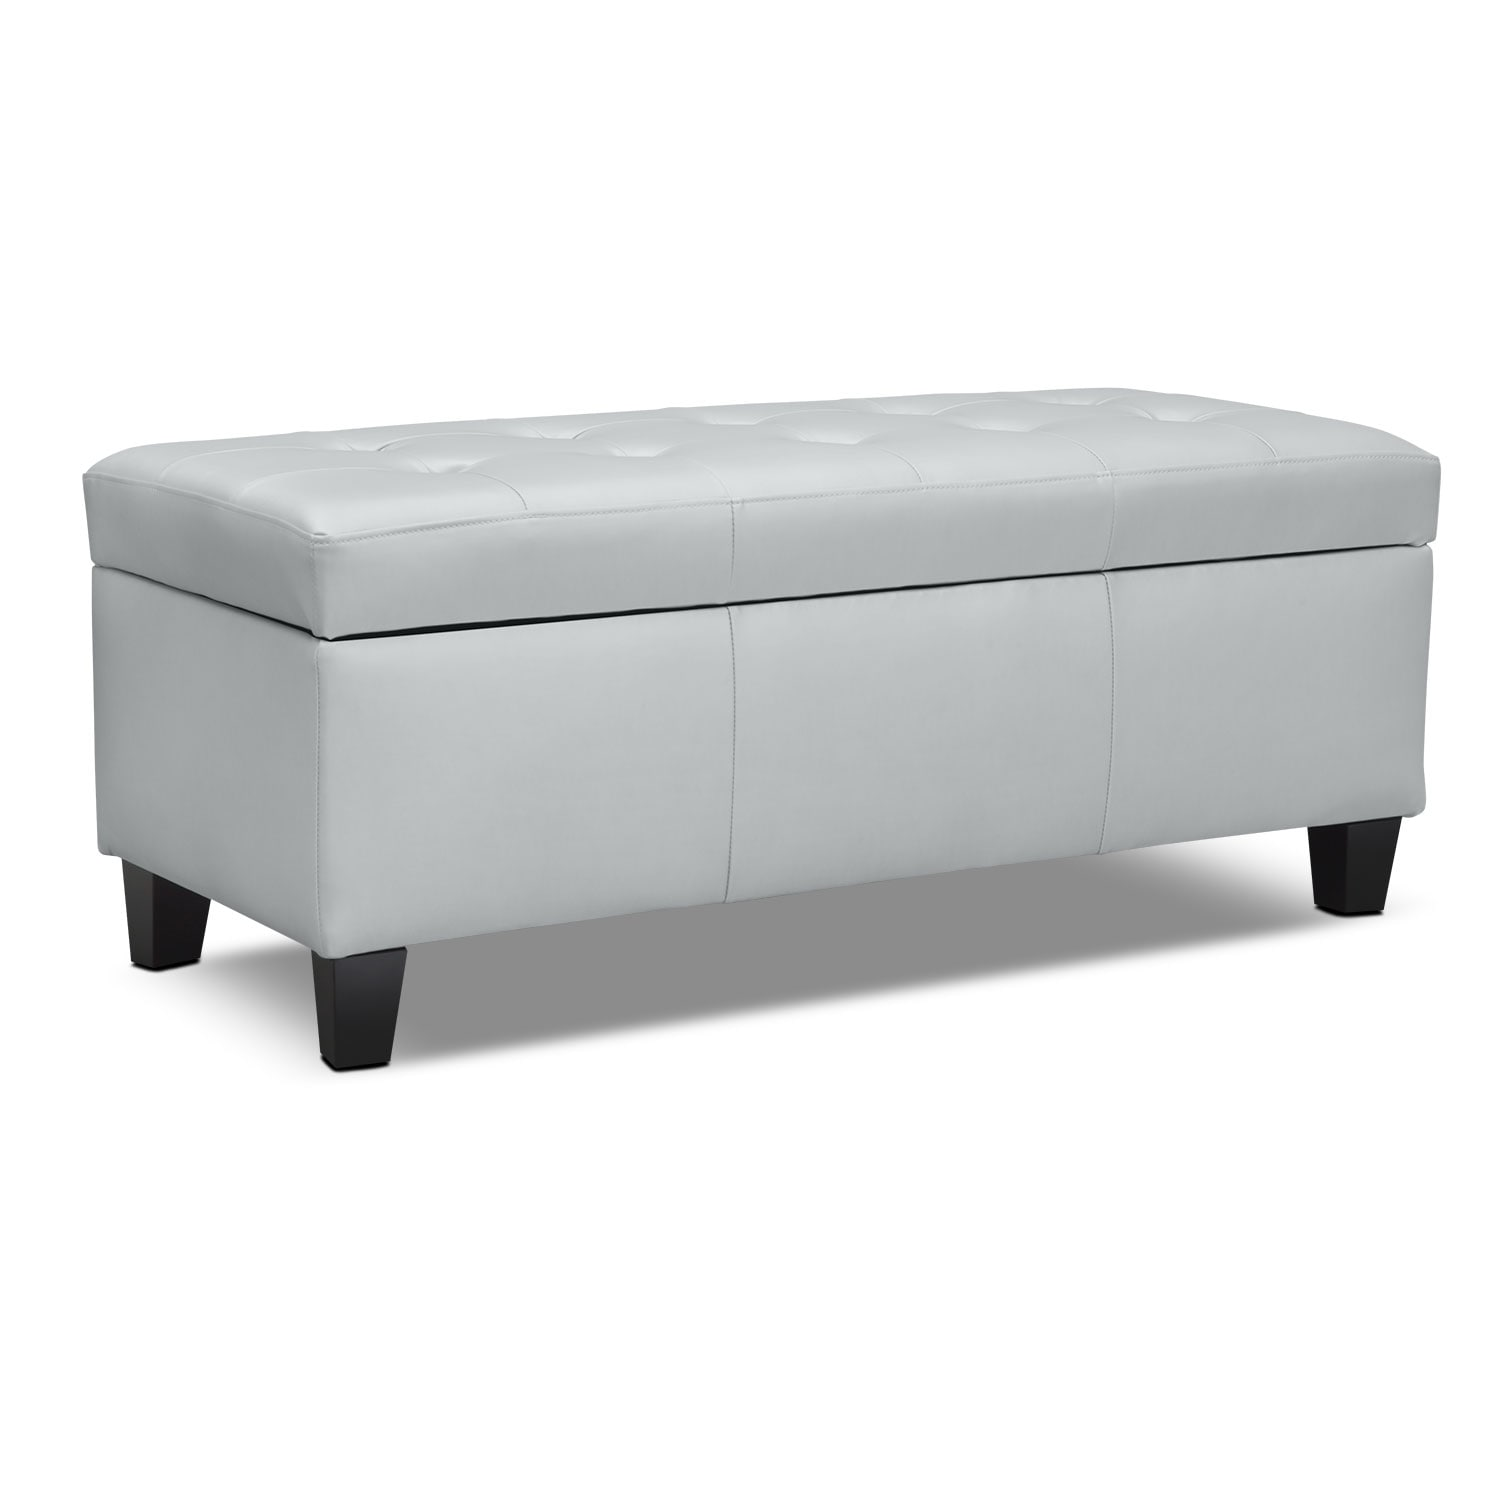 Kids Furniture - Valerie Silver Storage Bench